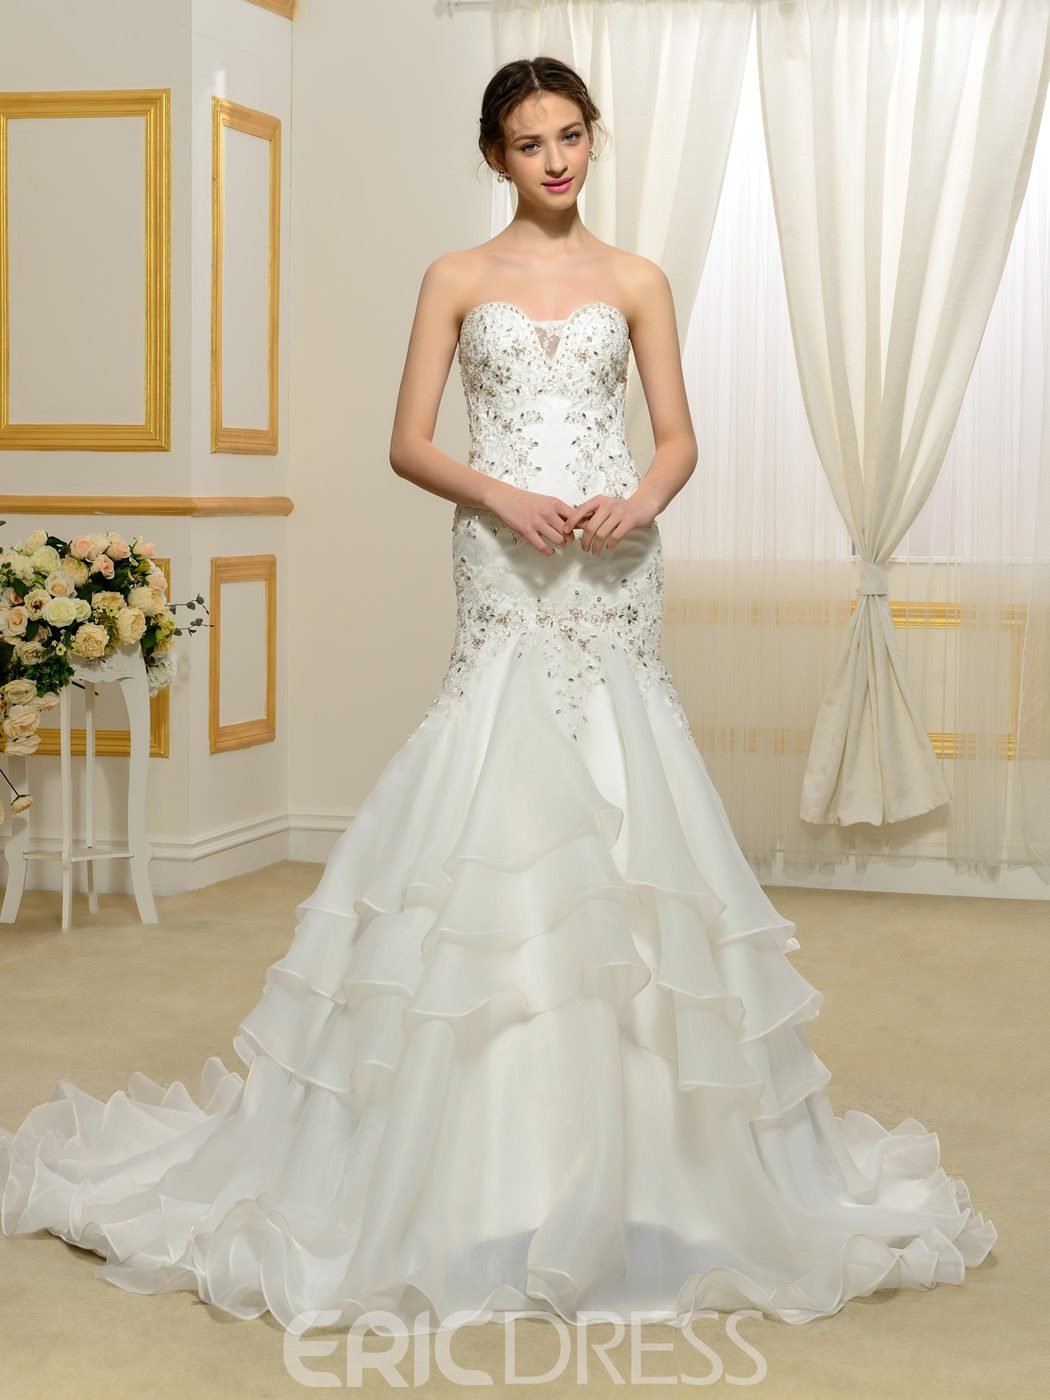 Ericdress High Quality Appliques Sweetheart Mermaid Wedding Dress